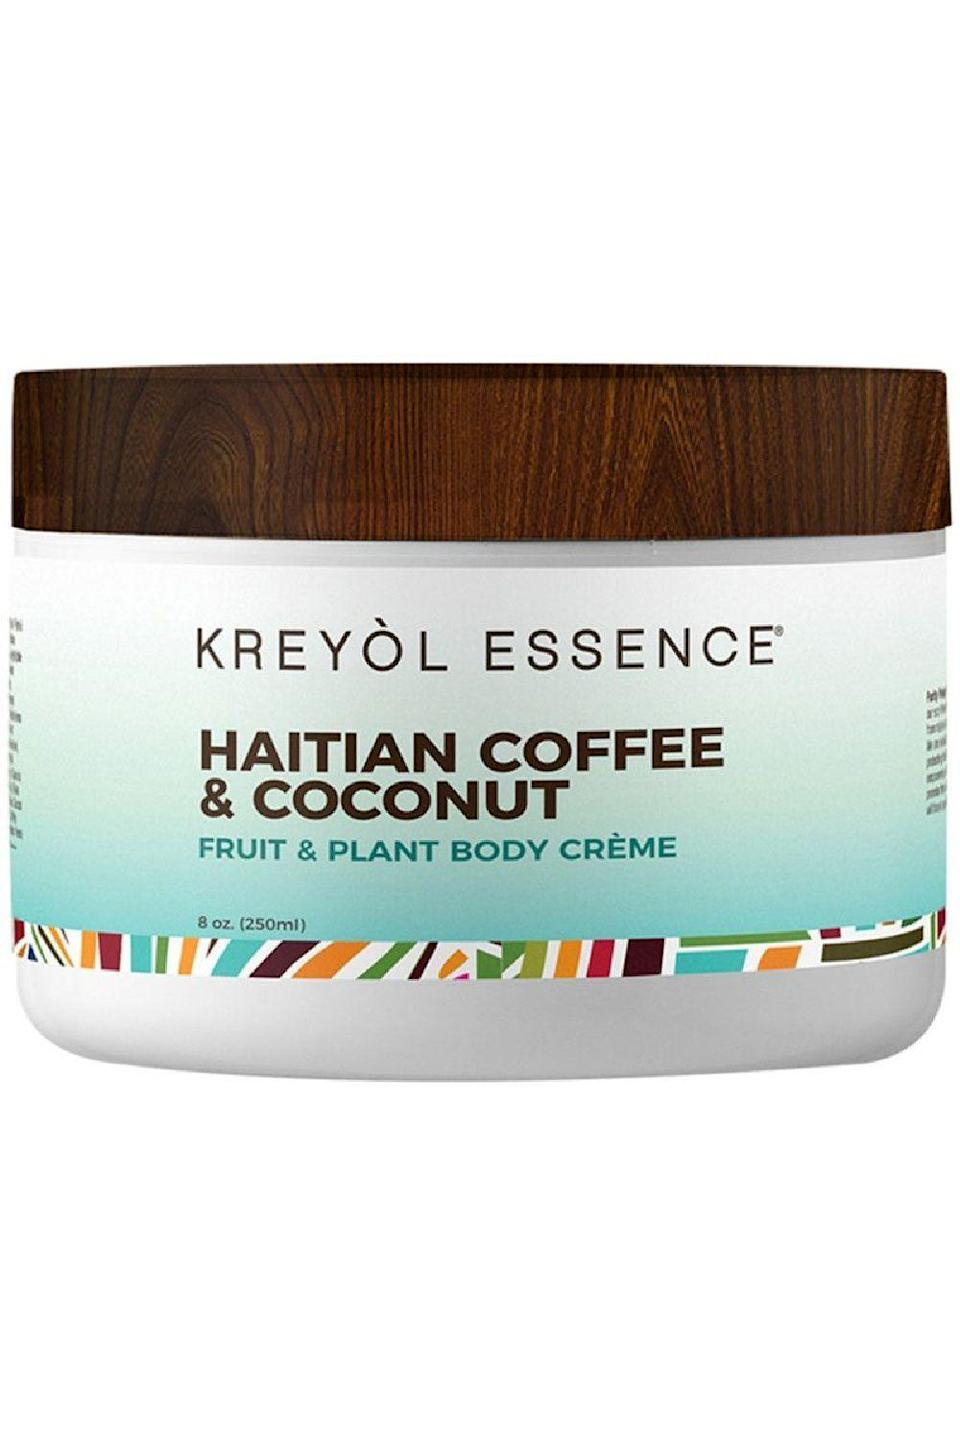 """<p><strong>Kreyòl Essence</strong></p><p>amazon.com</p><p><strong>$39.99</strong></p><p><a href=""""https://www.amazon.com/KREYOL-ESSENCE-Haitian-Coffee-Coconut/dp/B08D7SMFC2/?tag=syn-yahoo-20&ascsubtag=%5Bartid%7C10049.g.23323942%5Bsrc%7Cyahoo-us"""" rel=""""nofollow noopener"""" target=""""_blank"""" data-ylk=""""slk:Shop Now"""" class=""""link rapid-noclick-resp"""">Shop Now</a></p><p>No, it's not technically a stretch mark cream, but <strong>this non-greasy body cream includes the brand's Haitian Black <a href=""""https://www.cosmopolitan.com/style-beauty/beauty/a29752258/castor-oil-for-hair-growth/"""" rel=""""nofollow noopener"""" target=""""_blank"""" data-ylk=""""slk:castor oil"""" class=""""link rapid-noclick-resp"""">castor oil</a>, which is commonly used as a <a href=""""https://www.cosmopolitan.com/style-beauty/beauty/g23548613/stretch-mark-oils/"""" rel=""""nofollow noopener"""" target=""""_blank"""" data-ylk=""""slk:stretch mark oil"""" class=""""link rapid-noclick-resp"""">stretch mark oil</a>, thanks its high <a href=""""https://www.cosmopolitan.com/style-beauty/beauty/a27609307/vitamin-e-for-skin-benefits-products/"""" rel=""""nofollow noopener"""" target=""""_blank"""" data-ylk=""""slk:vitamin E"""" class=""""link rapid-noclick-resp"""">vitamin E</a></strong> content. Vitamin E is known for its nourishing, moisturizing, and soothing properties—all three things you want when treating stretch marks.</p>"""